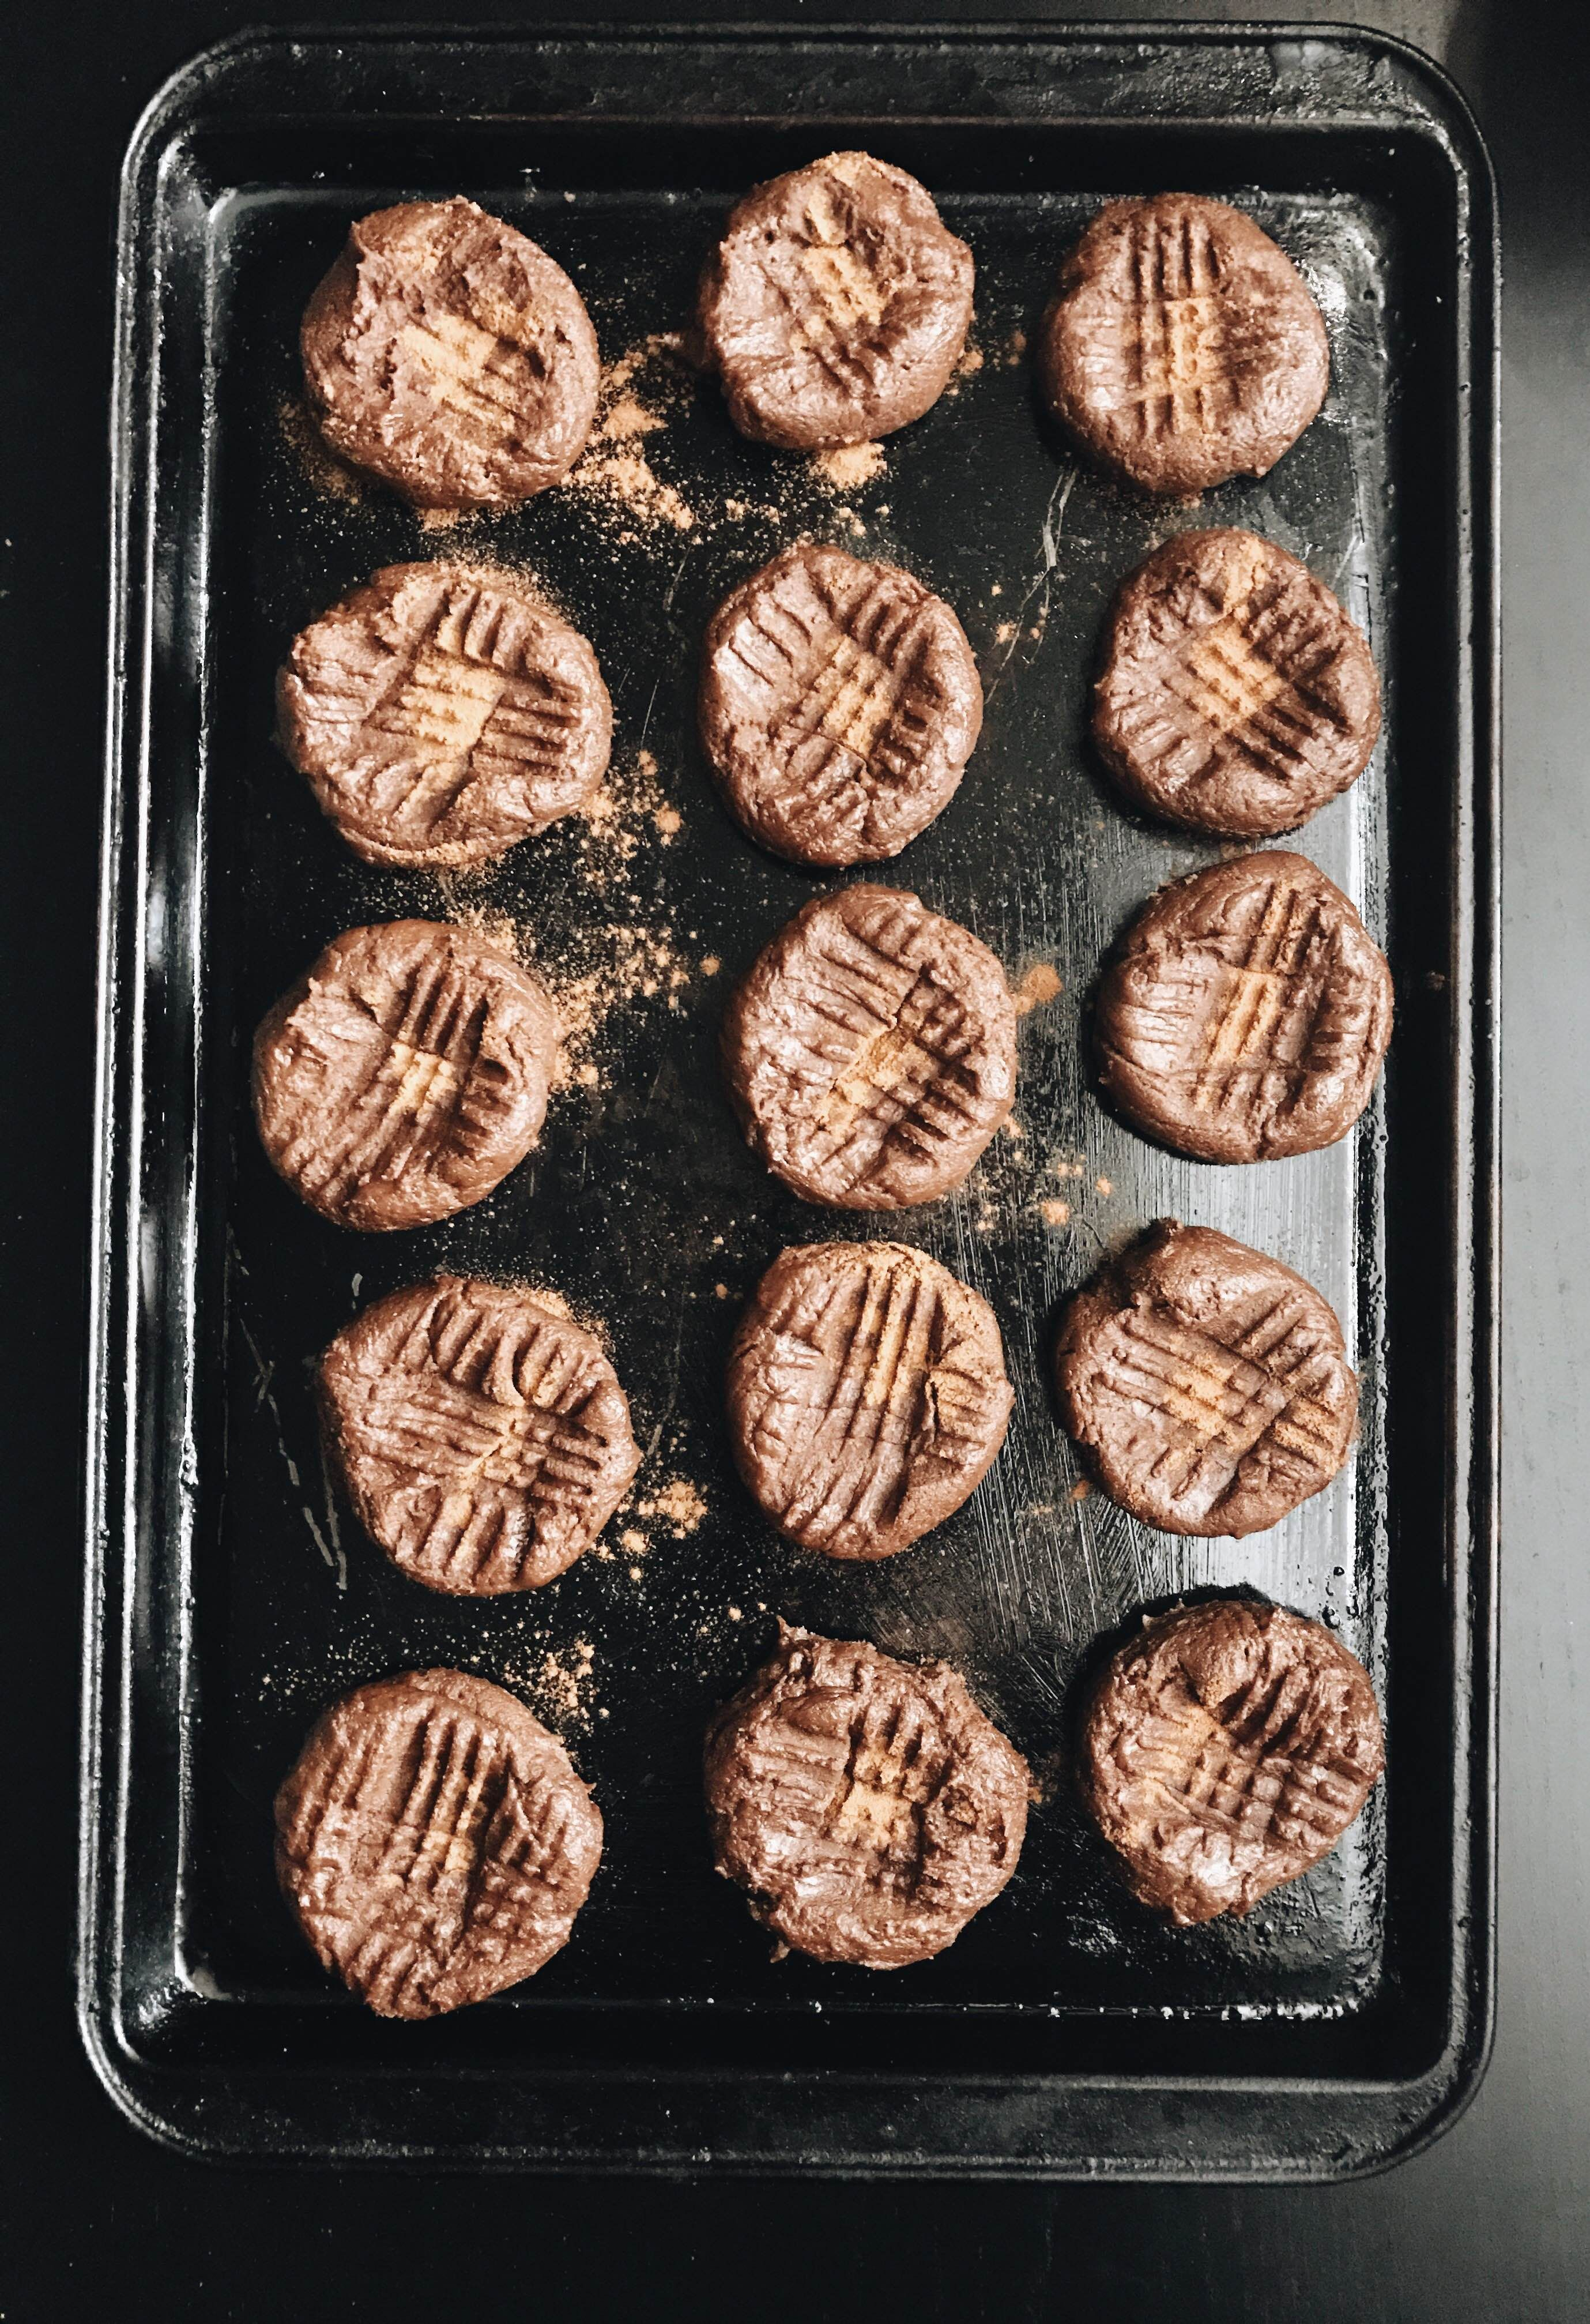 Incredibly Easy 6-Ingredient, One-Bowl Mexican Chocolate Peanut Butter Cookies